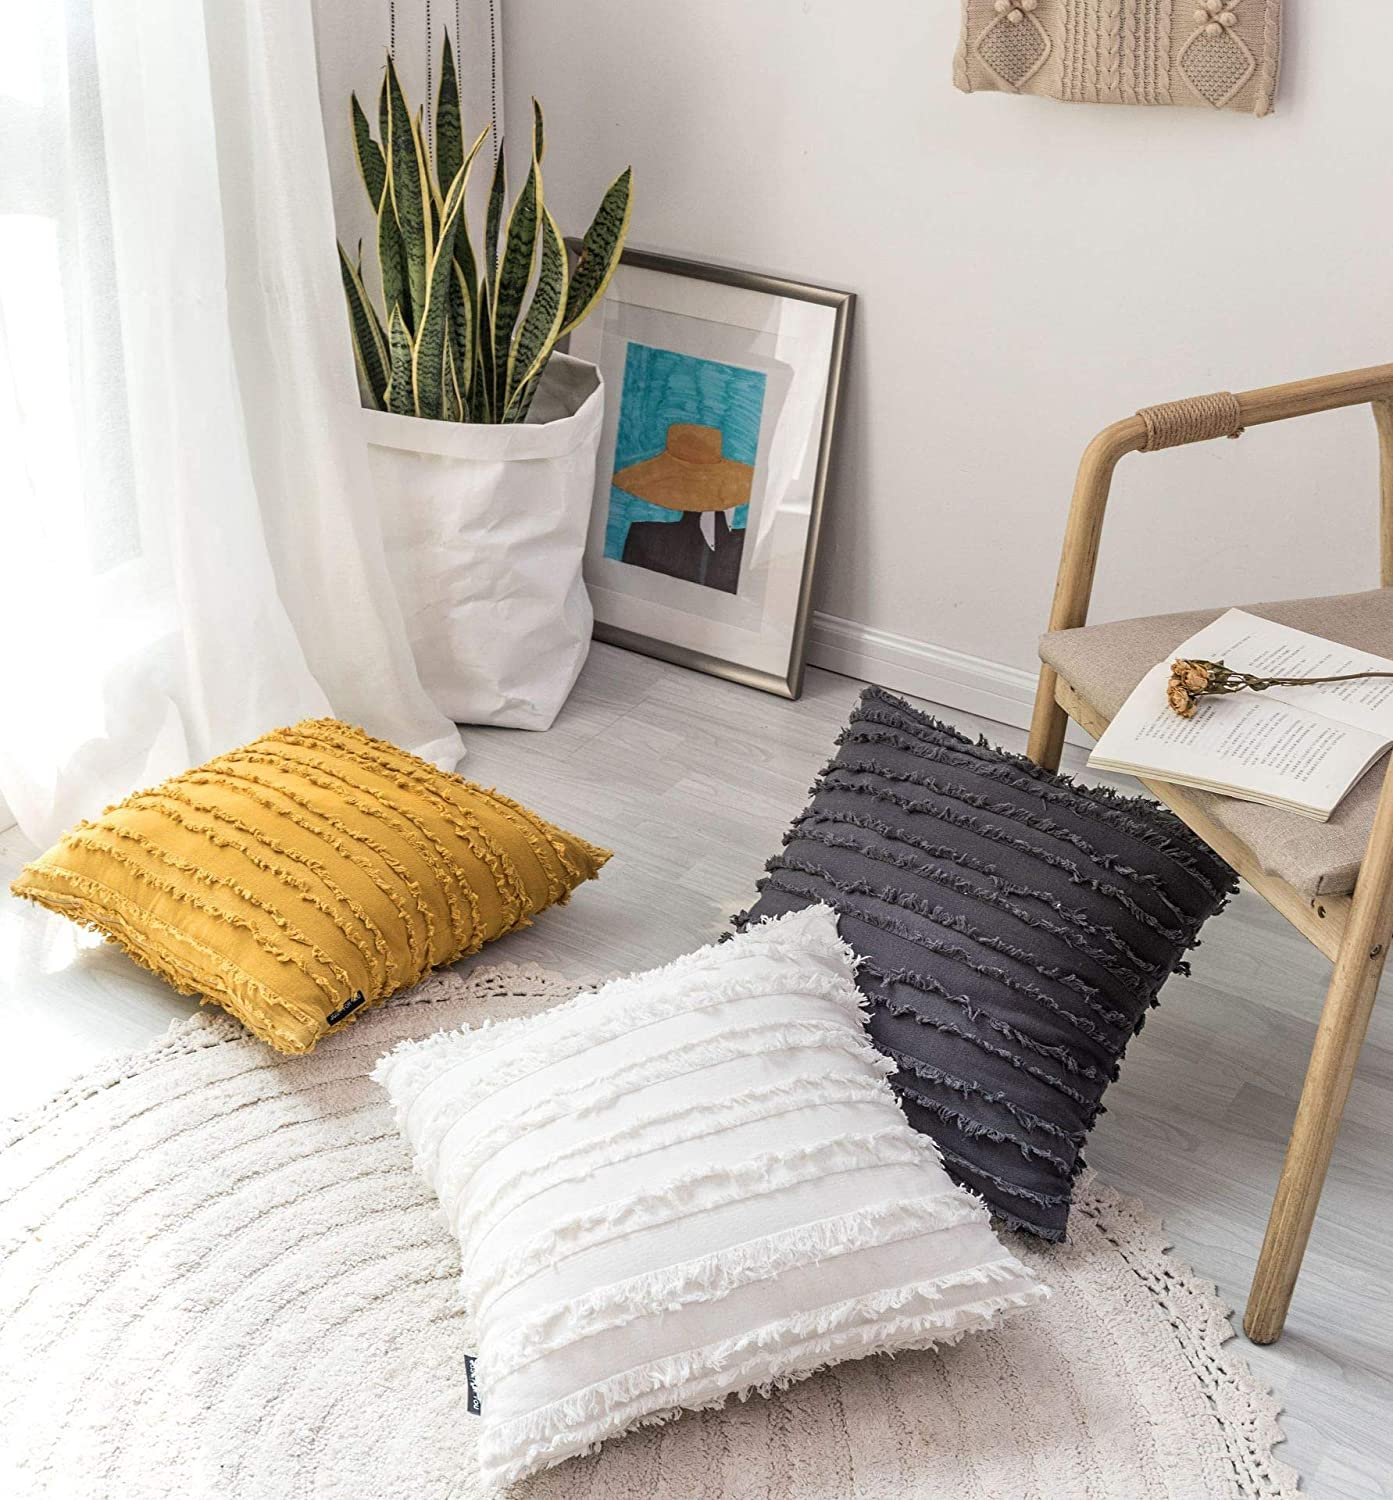 Ltd White and Black Decorative Throw Pillow Covers Hug This When You Miss Me Cute Woven Accent Cotton Square Cushion Case Casual Life Sofa Couch Toss Pillowcase Nook 18 X18 Inches QuZhou Jintai E-commerce co PC170315A